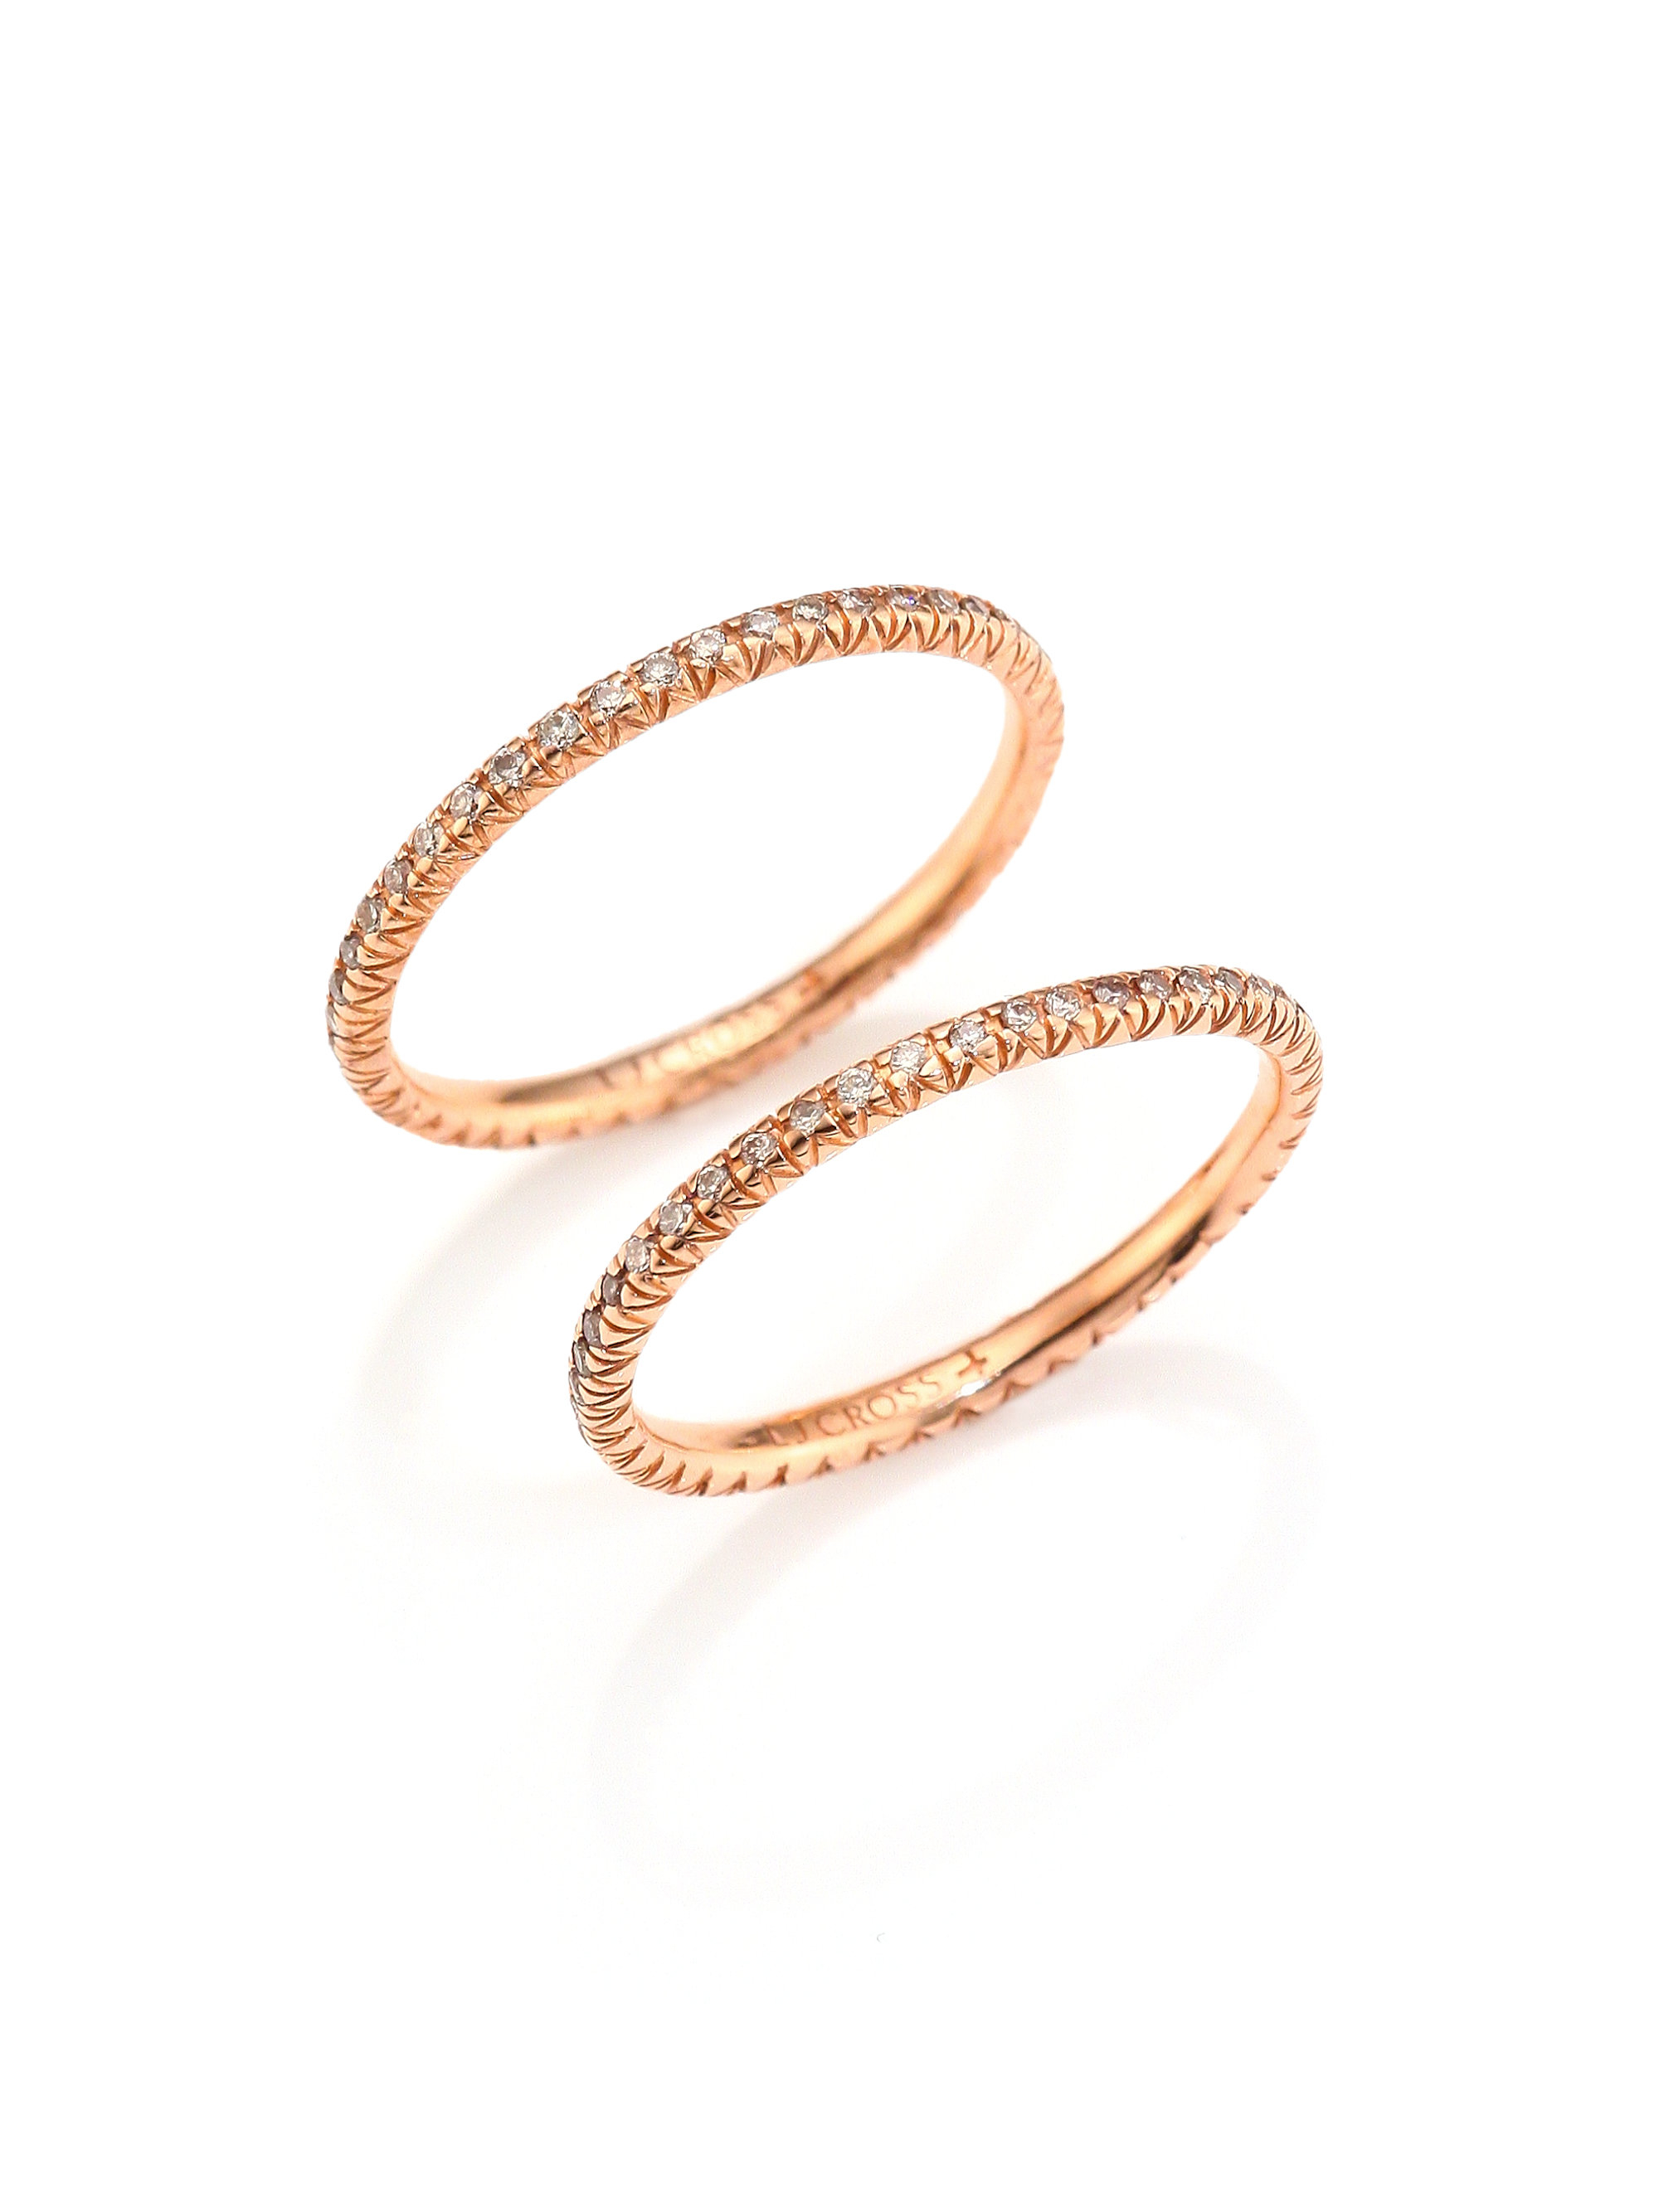 suzanne gold champagne gallery product kalan rose diamond pink lyst by ring jewelry normal